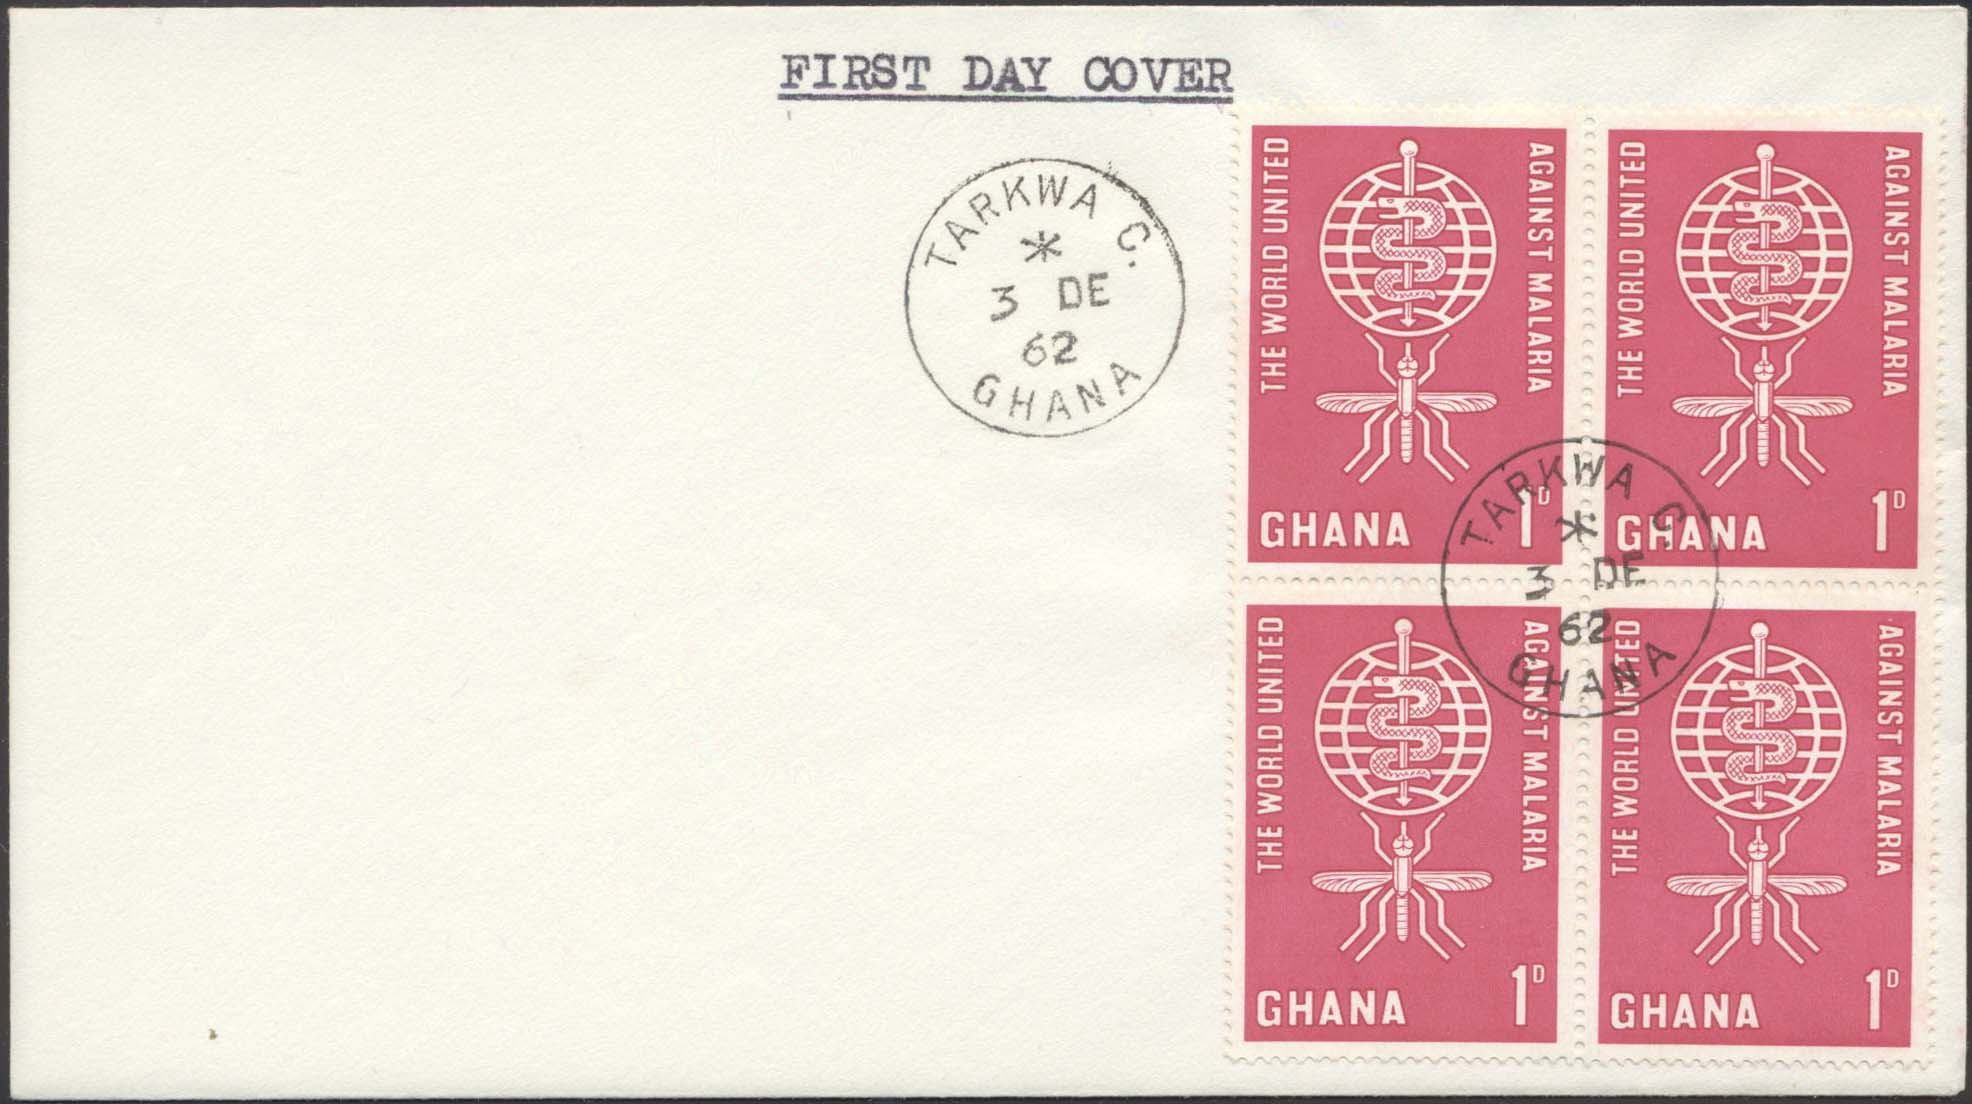 Scott 128 (FDC w/ No Cachet)(December 3, 1962)(Tarkwa C)